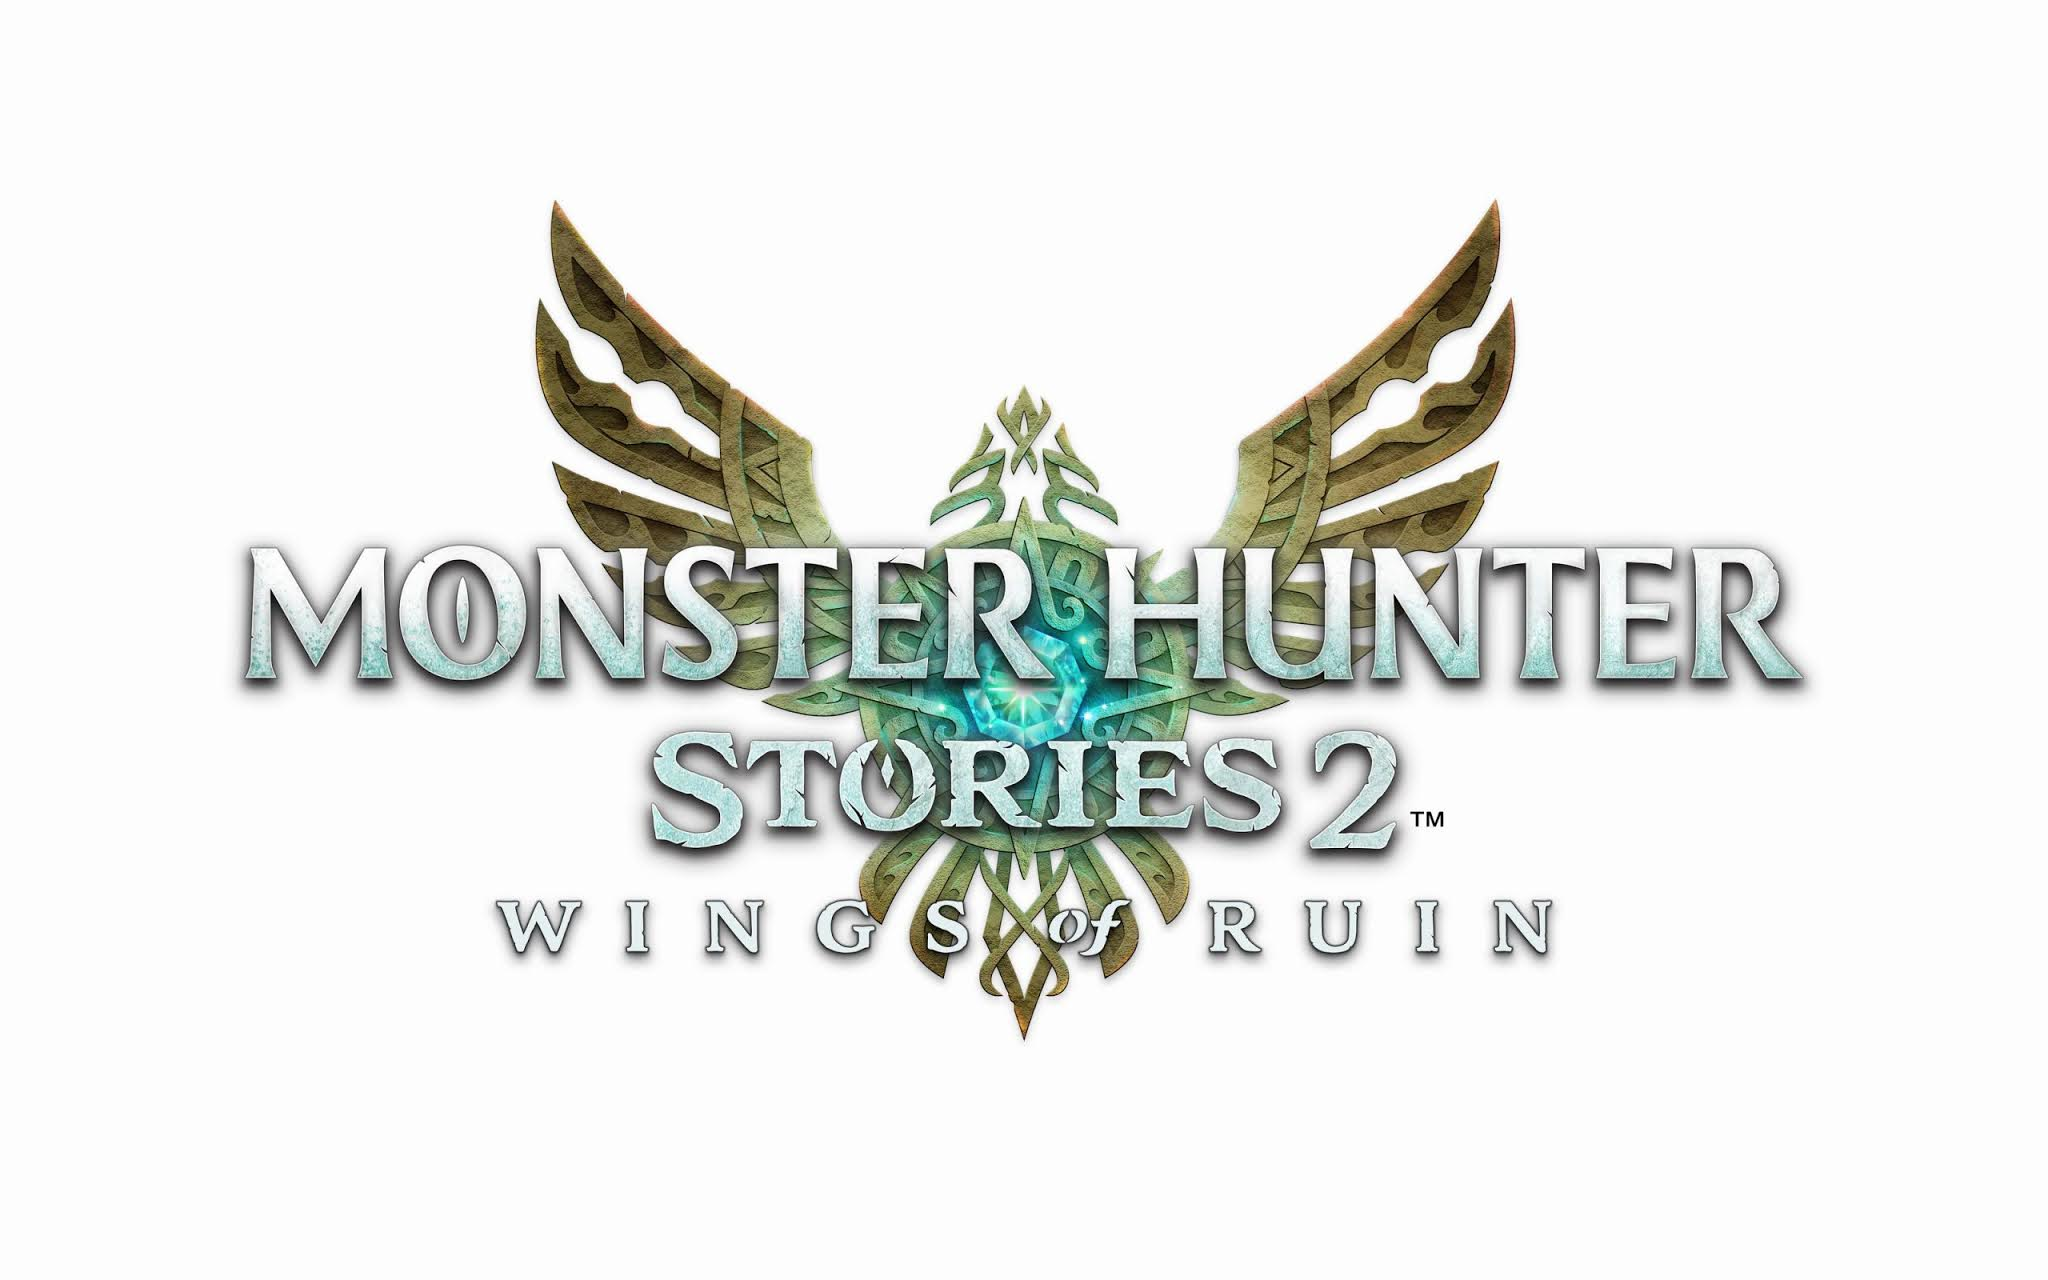 MONSTER HUNTER STORIES 2: WINGS OF RUIN SOARS ONTO NINTENDO SWITCH AND STEAM TODAY